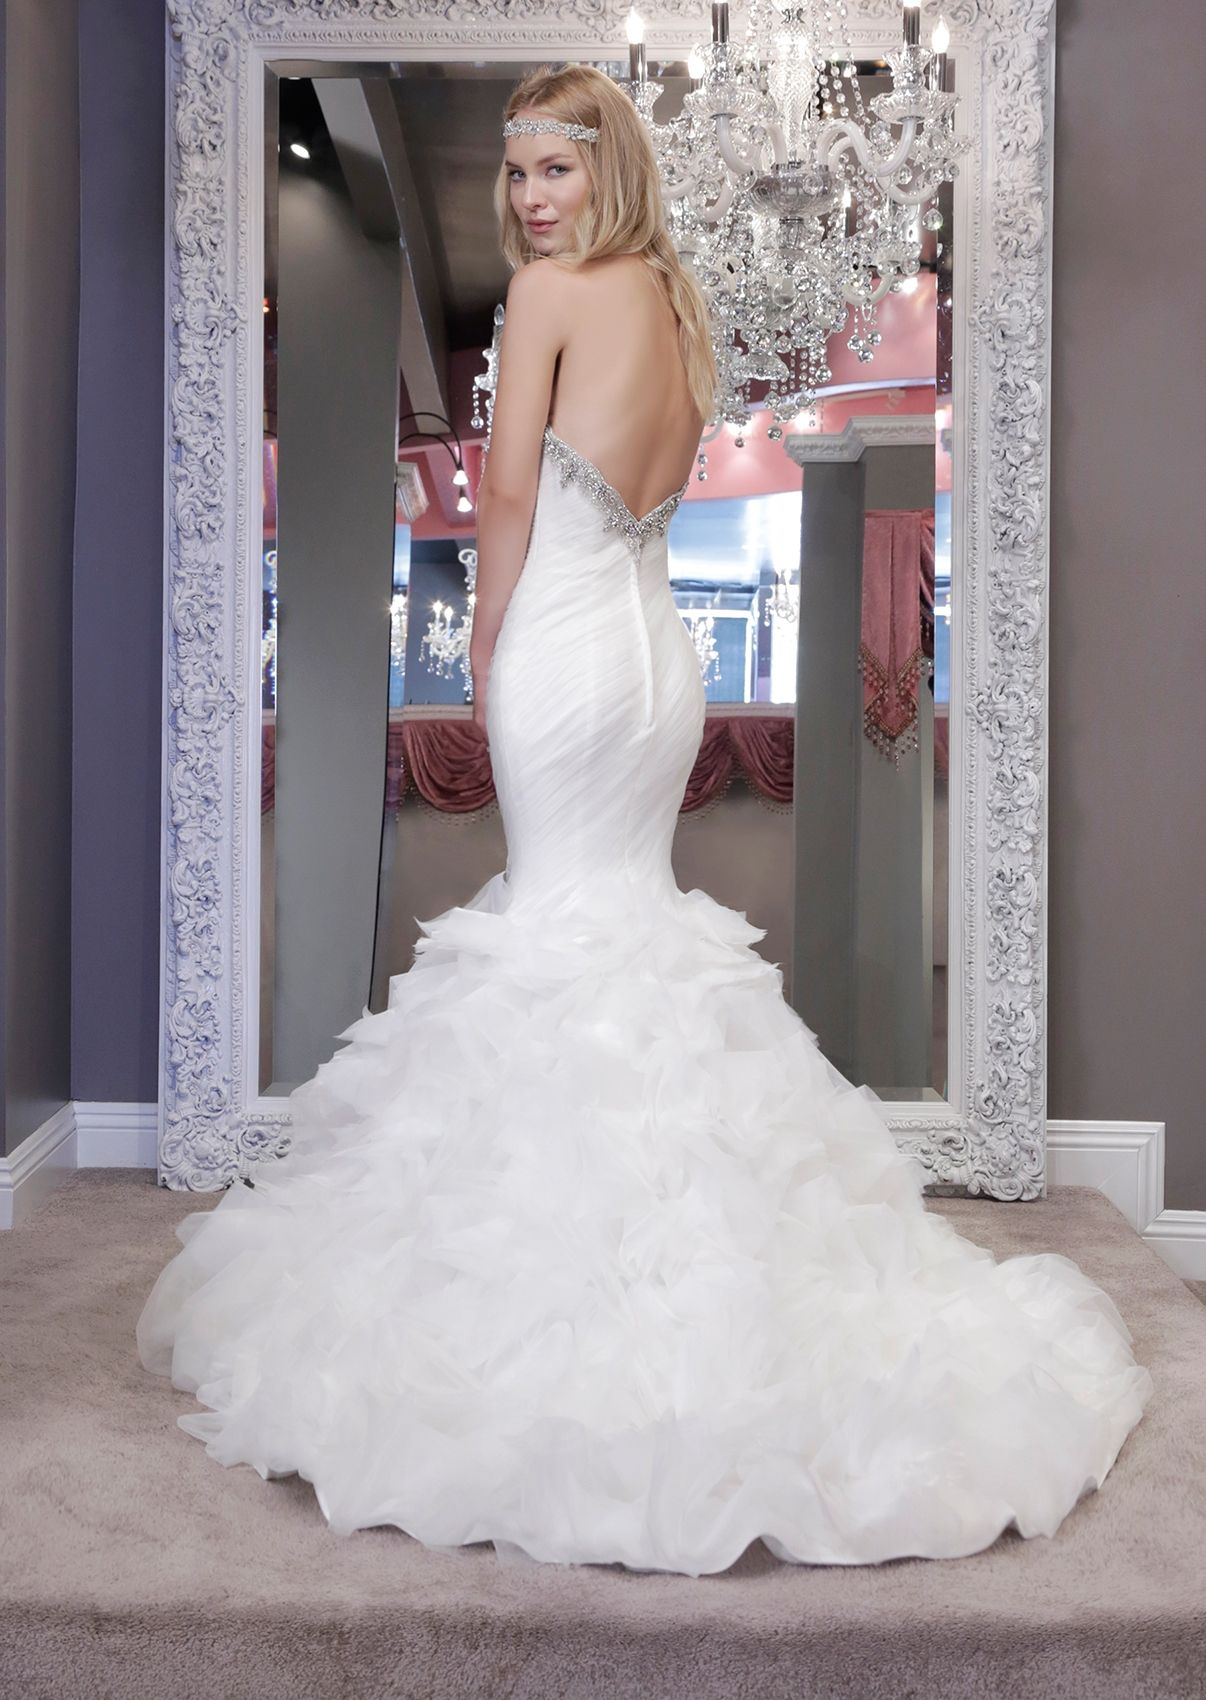 92d918a36c1210 Chic tulle ruched mermaid wedding dress with crystal embellishment at  sweetheart neckline and fully layered organza